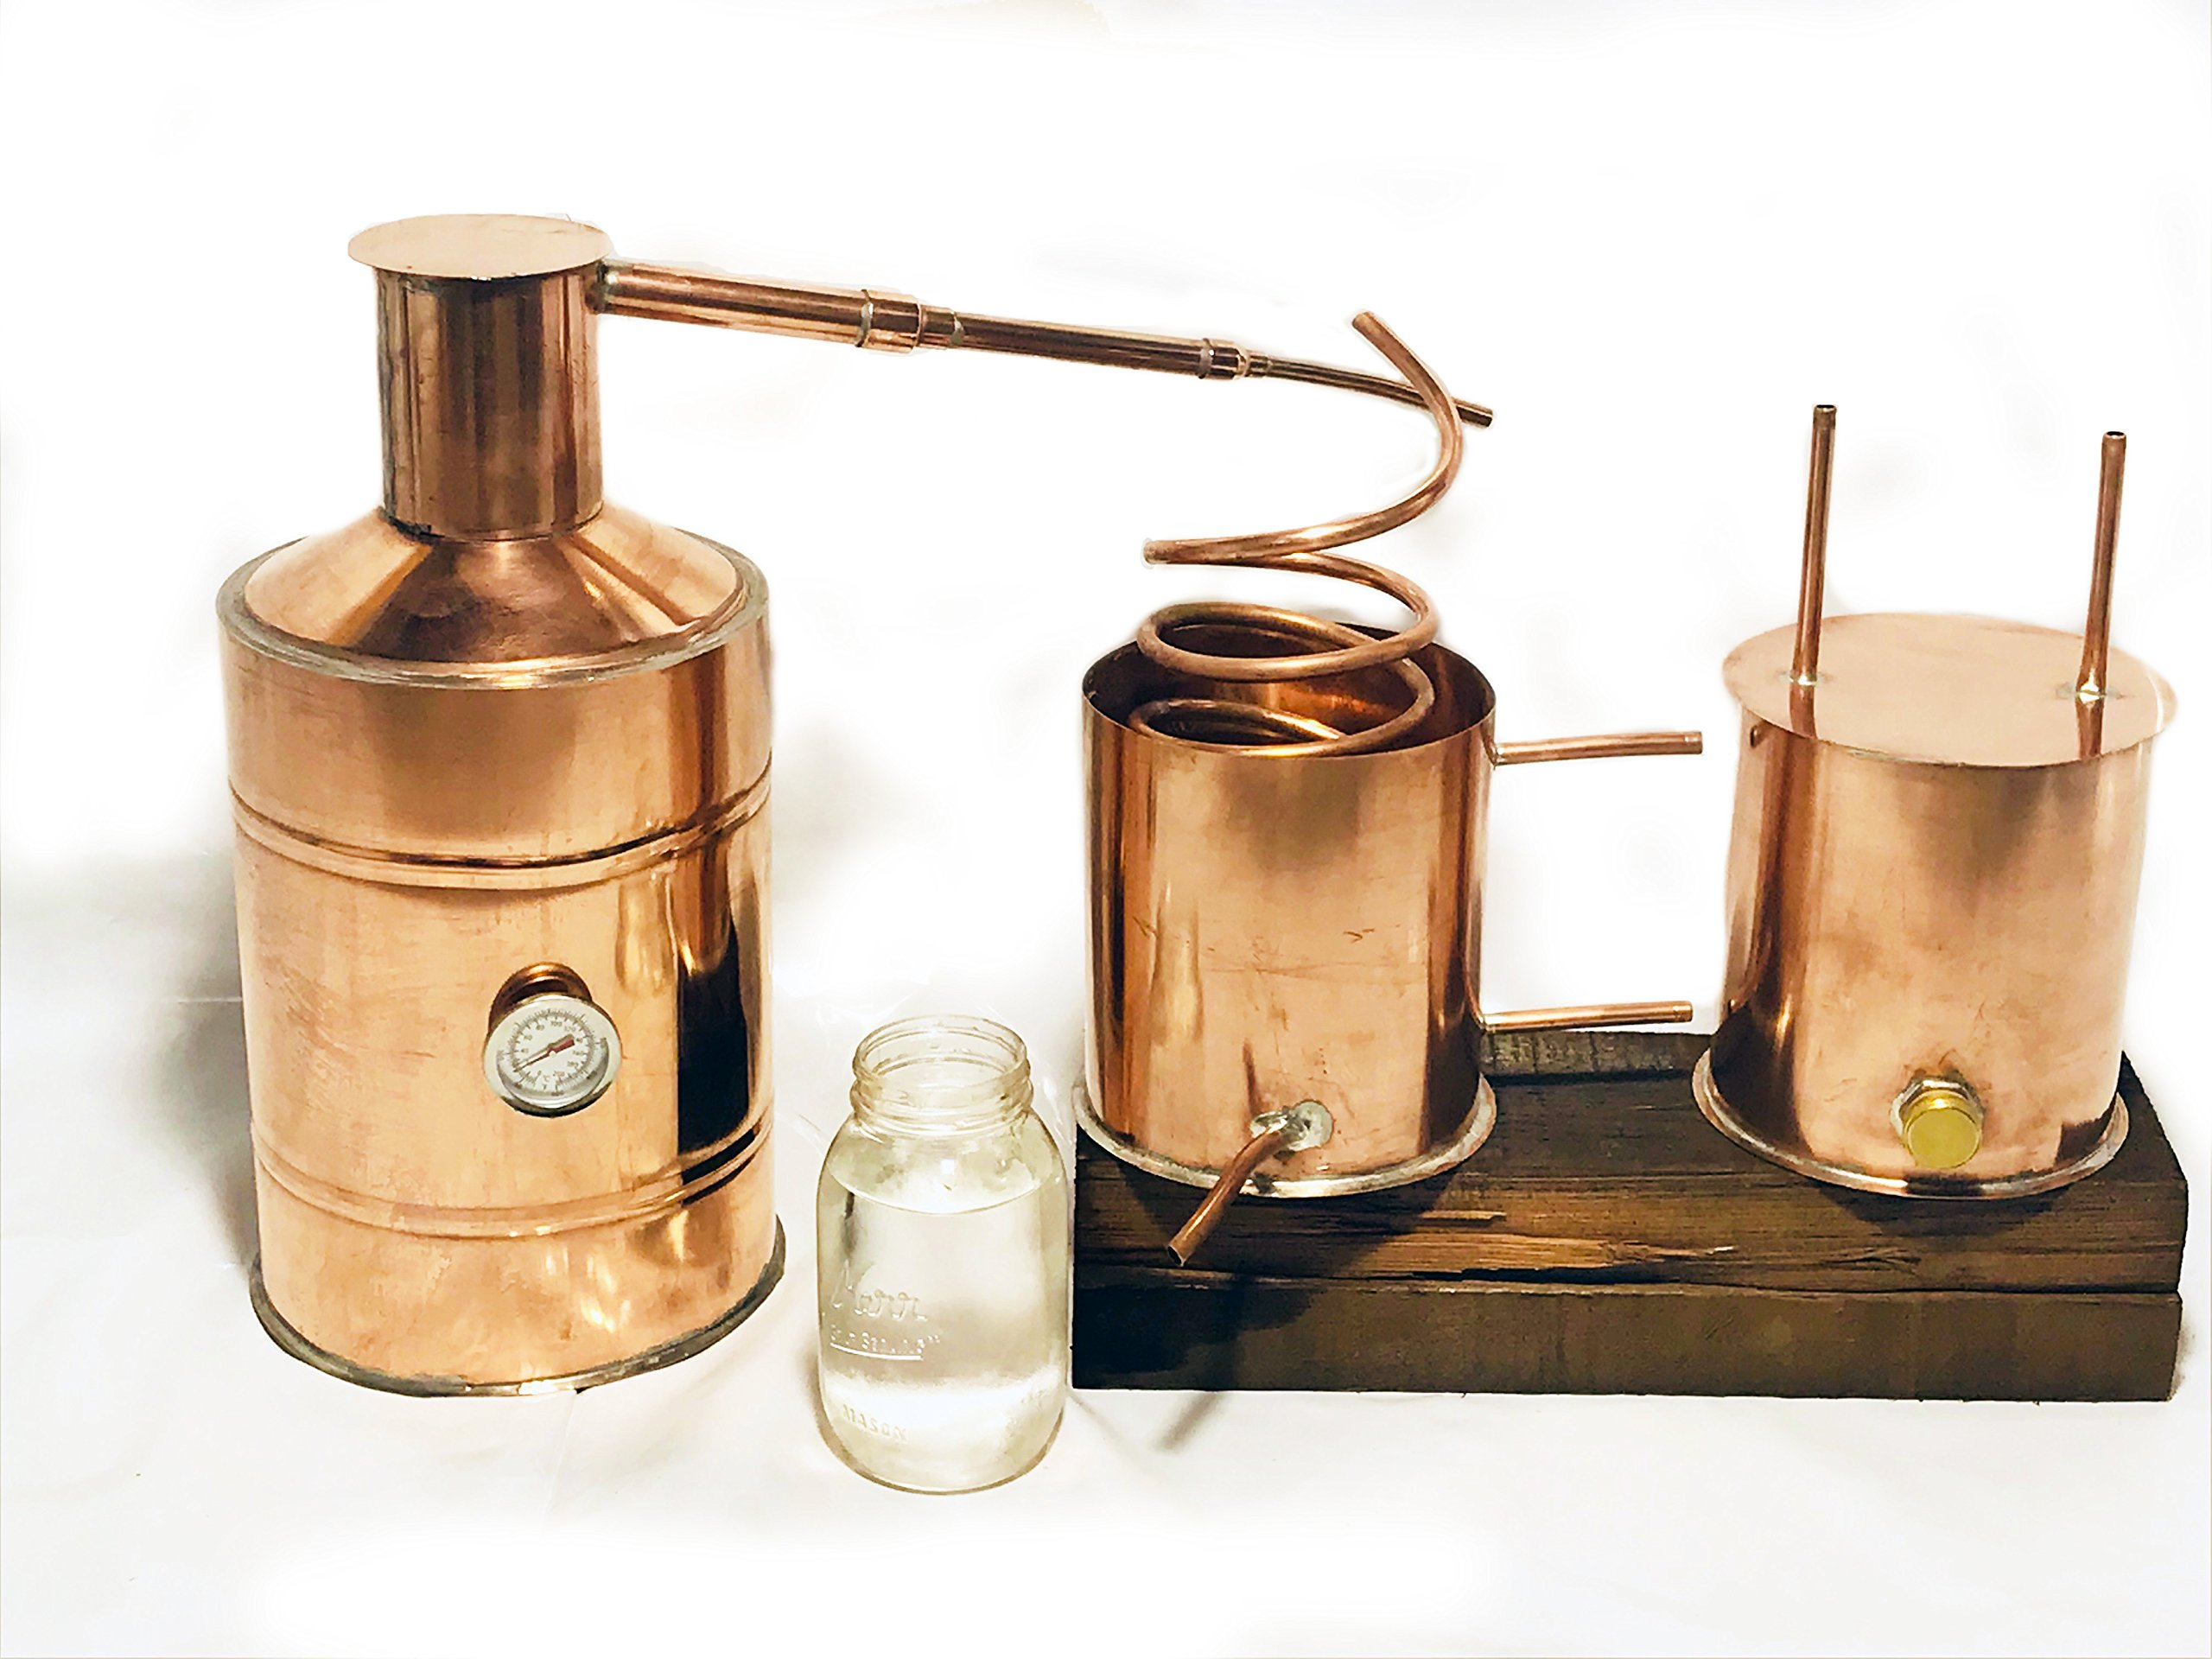 3 Gallon copper moonshine still